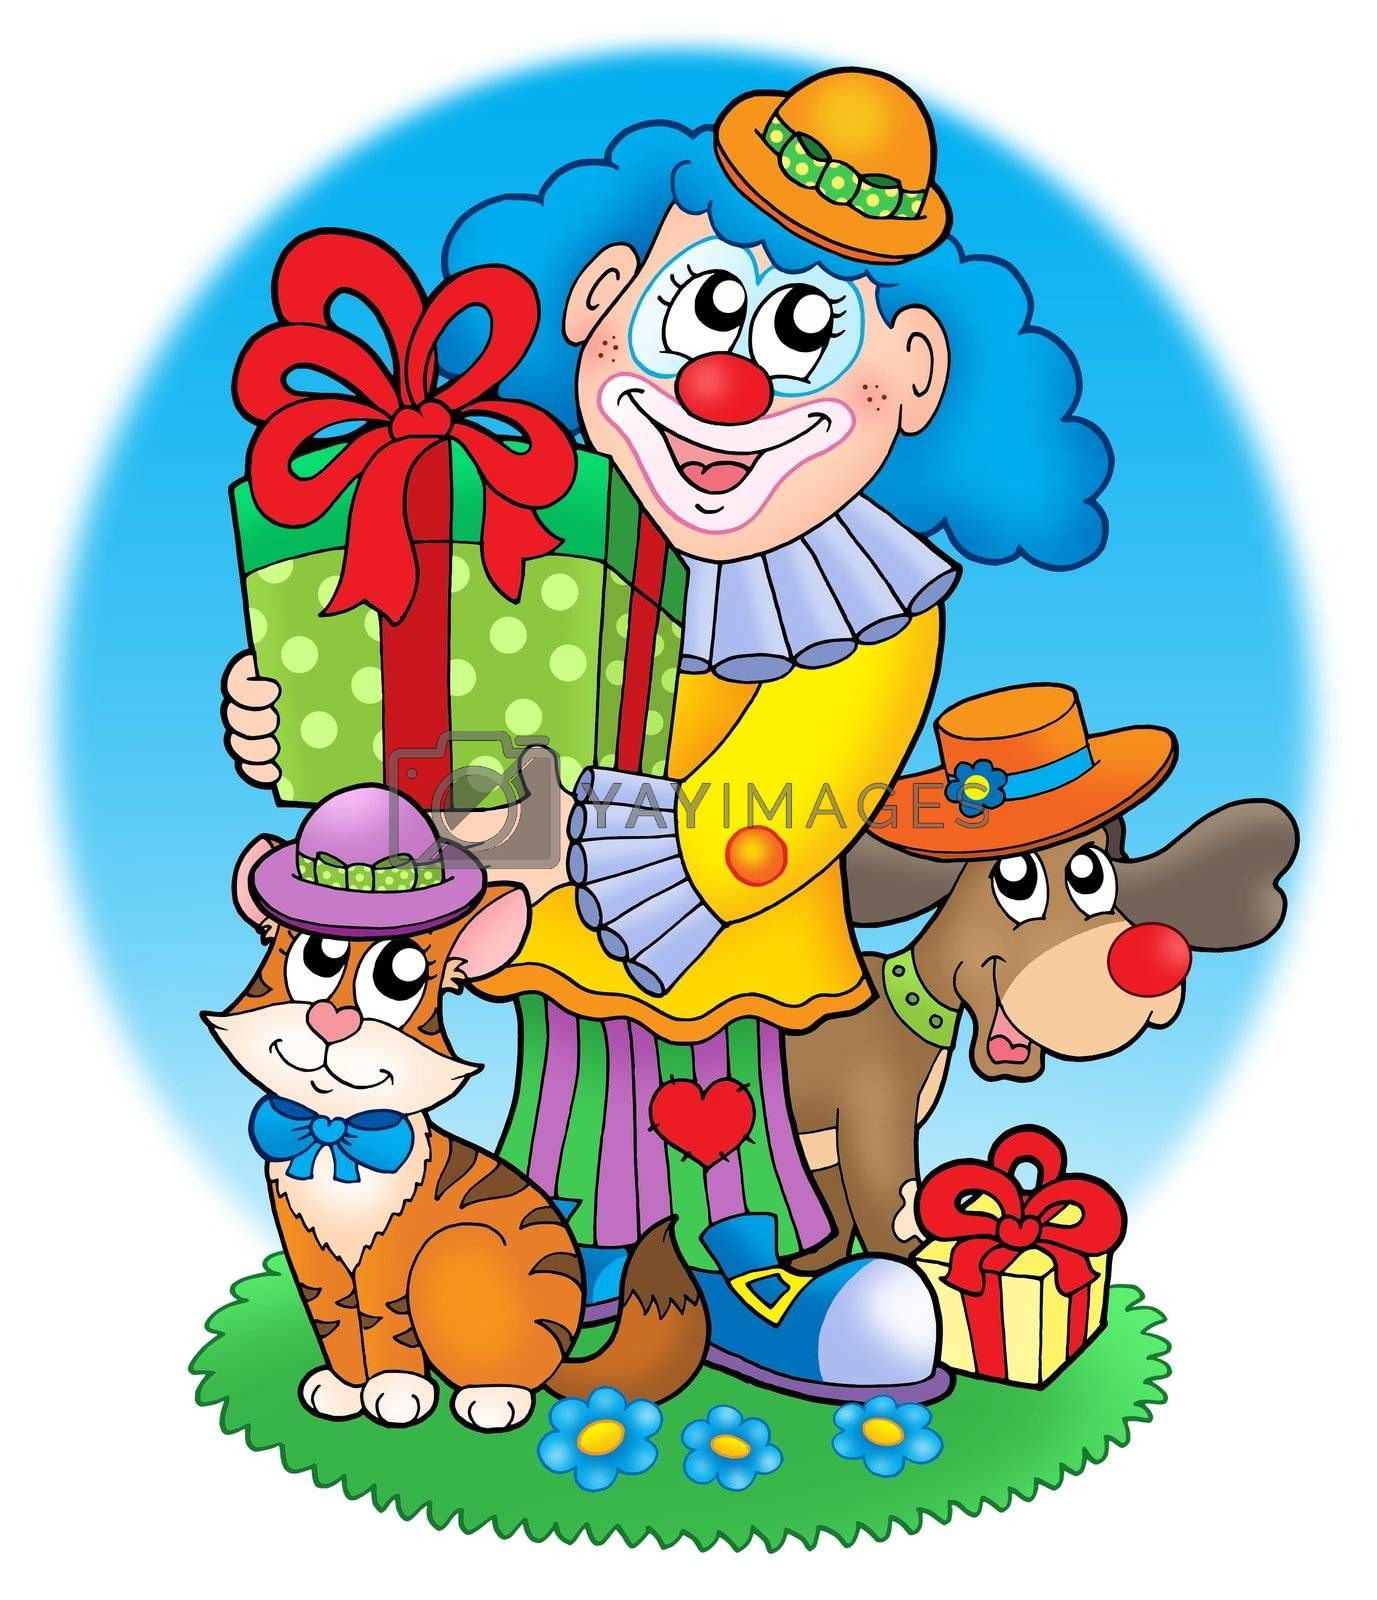 Circus clown with pets - color illustration.